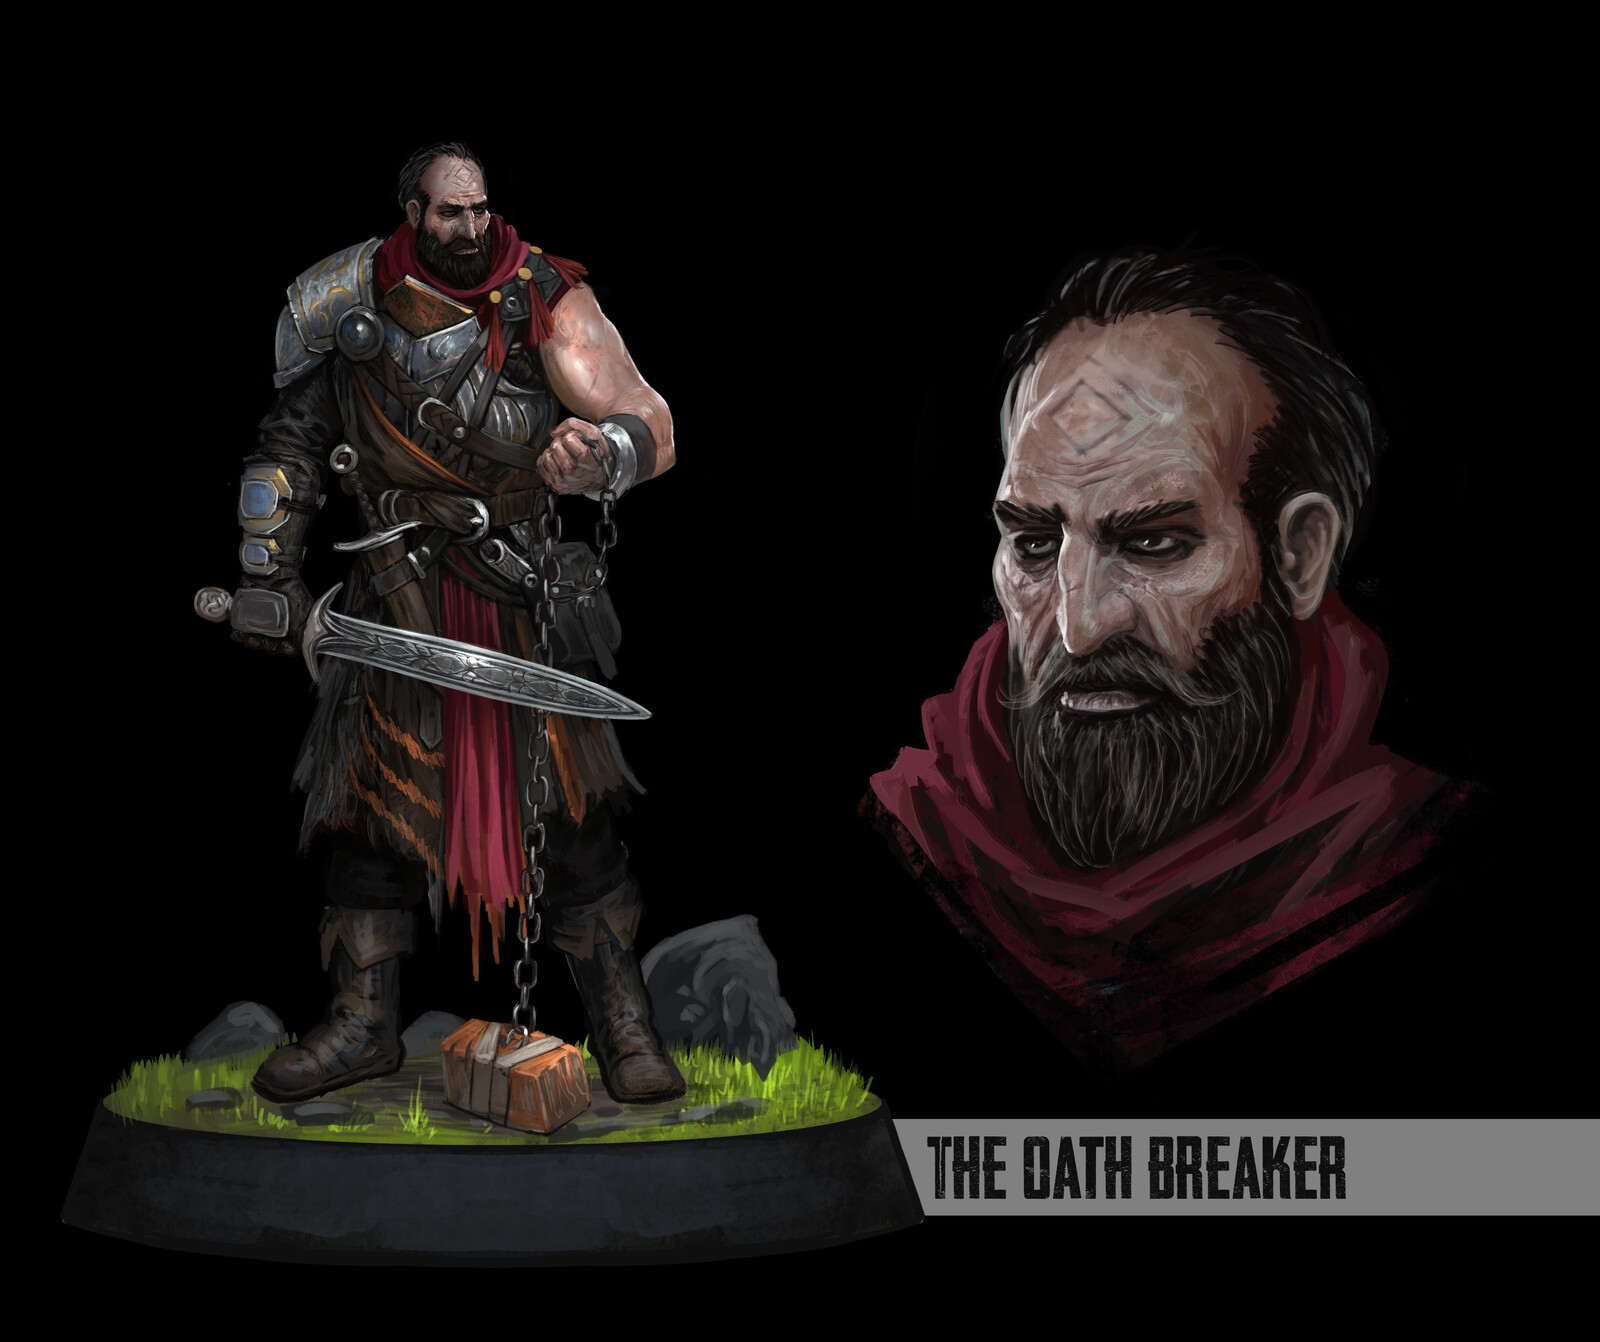 The Oath Breaker